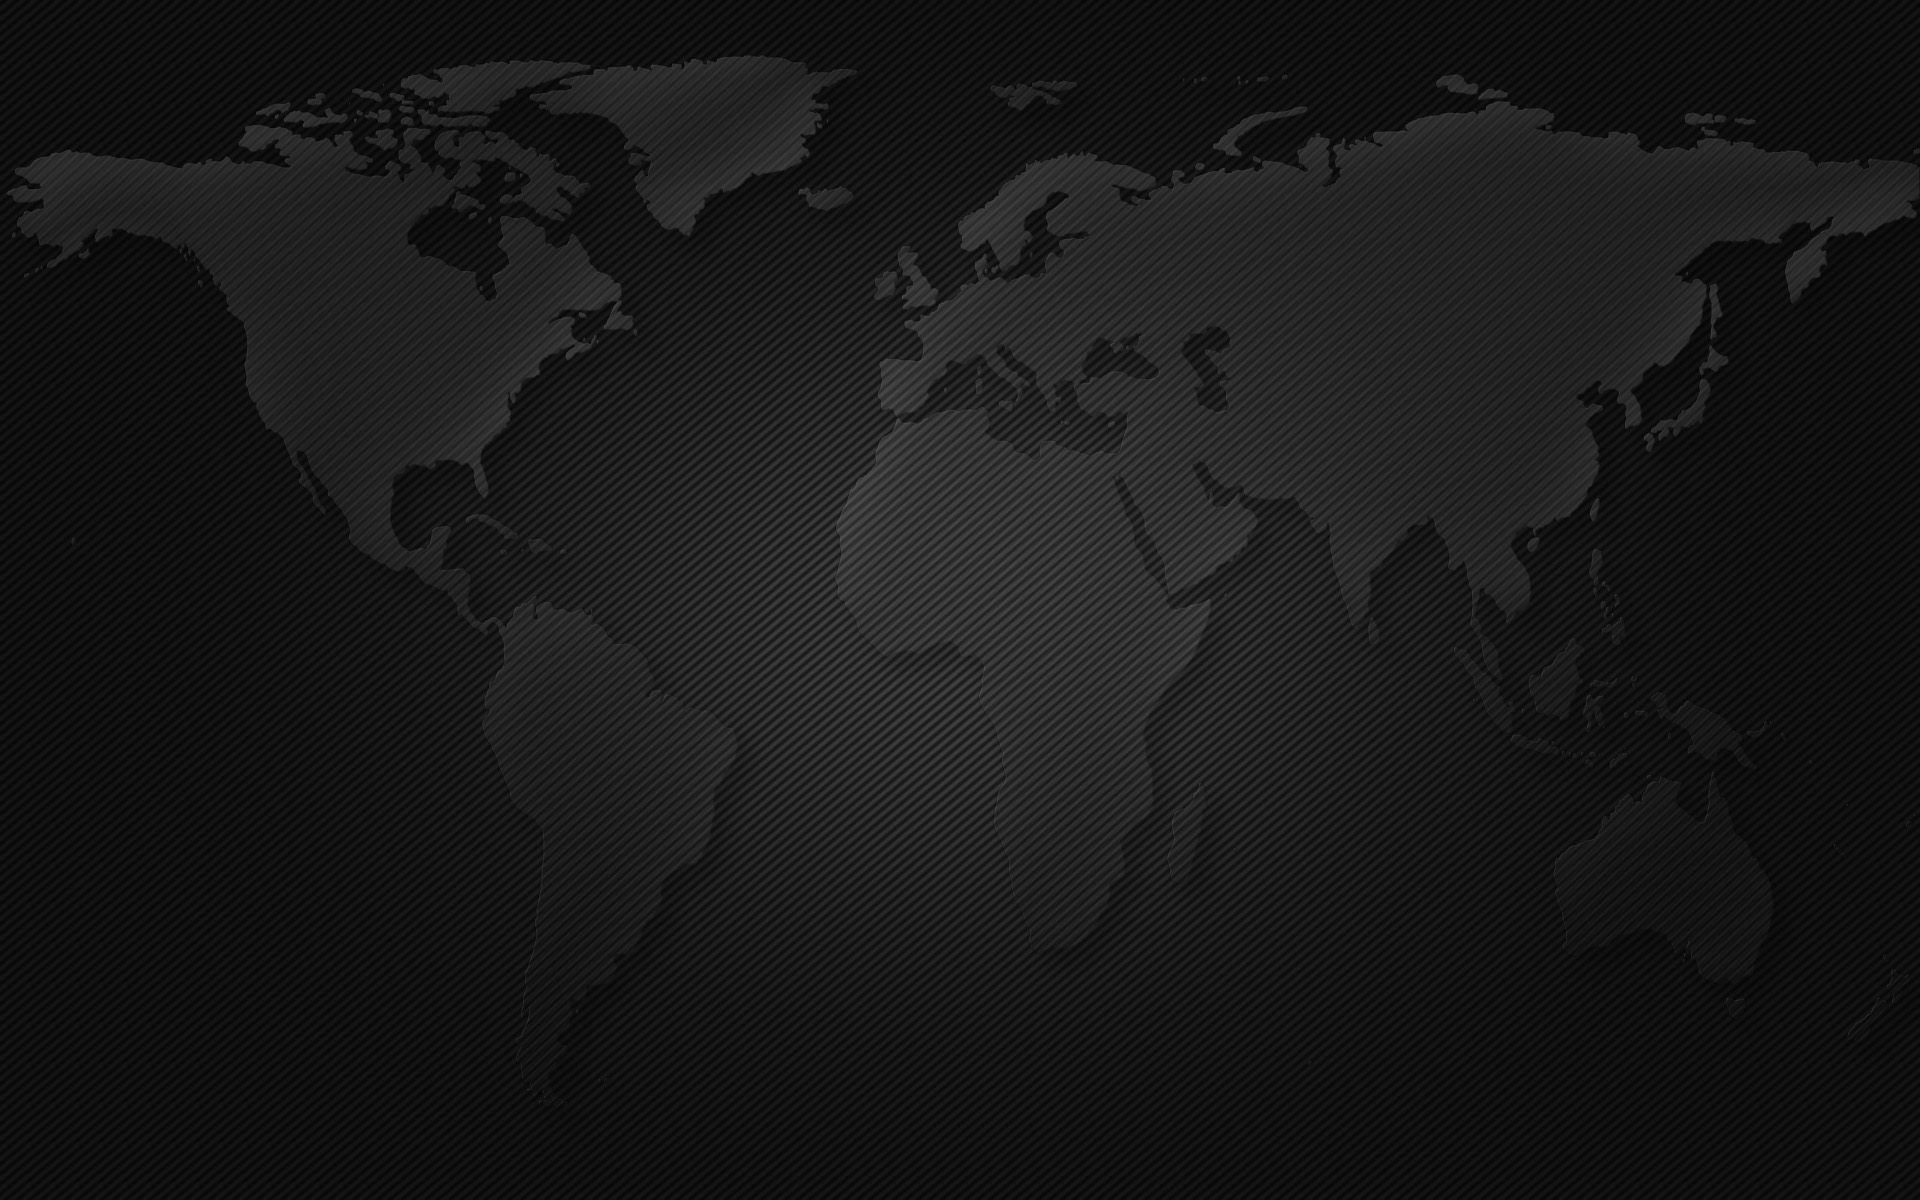 Hd black and white wallpapers for free download resolution p 3d world map black background publicscrutiny Images